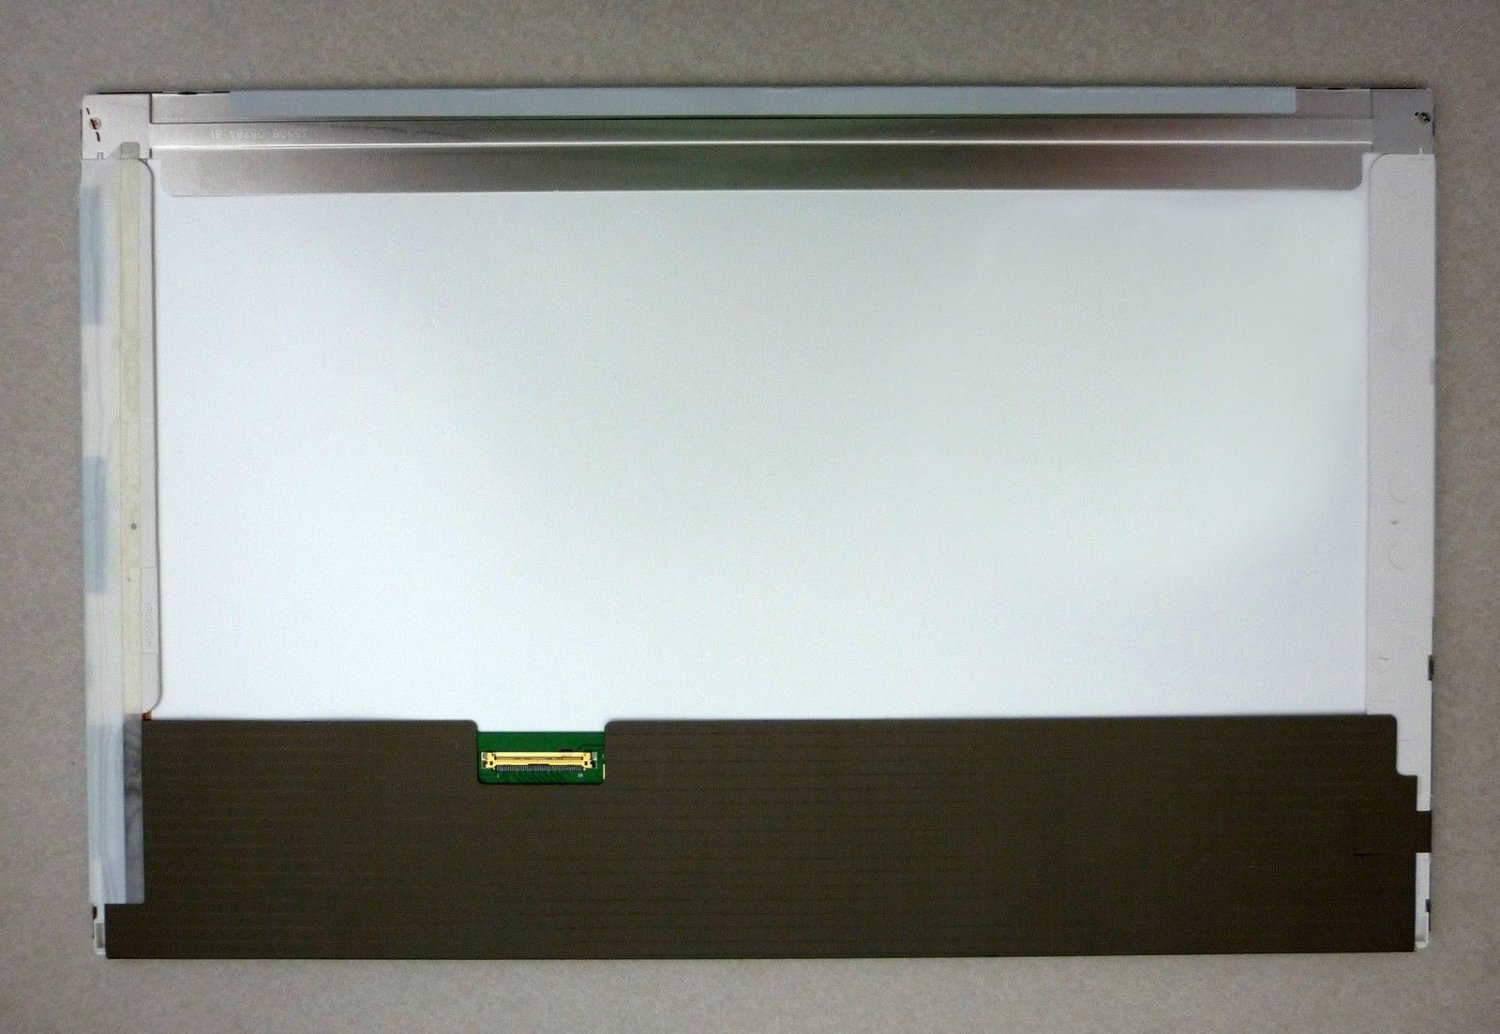 "LAPTOP LCD SCREEN FOR LENOVO 42T0735 14.1"" WXGA+"